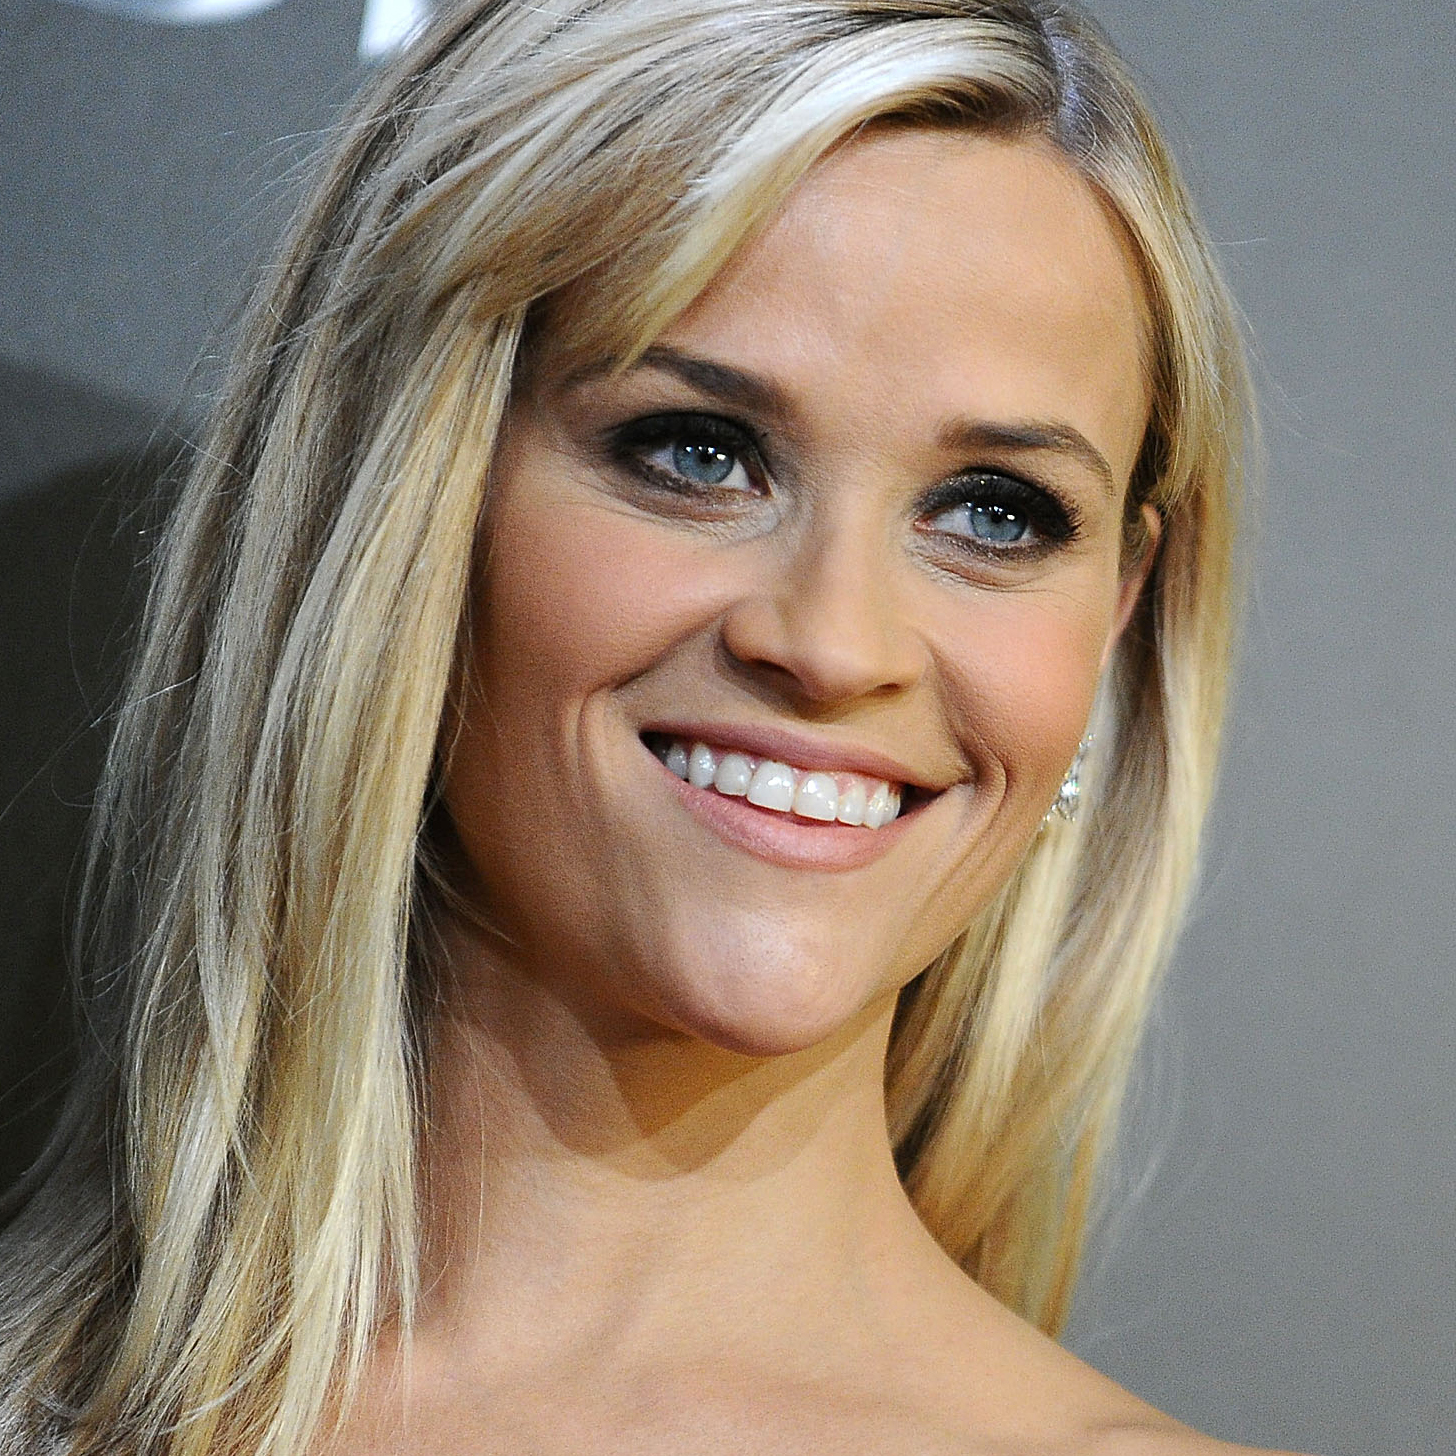 reese witherspoon moviesreese witherspoon daughter, reese witherspoon movies, reese witherspoon shake it off, reese witherspoon sing, reese witherspoon vk, reese witherspoon 2016, reese witherspoon 2017, reese witherspoon films, reese witherspoon husband, reese witherspoon википедия, reese witherspoon young, reese witherspoon singing, reese witherspoon gif, reese witherspoon nick kroll, reese witherspoon imdb, reese witherspoon venus, reese witherspoon oscar, reese witherspoon street style, reese witherspoon fansite, reese witherspoon фильмы